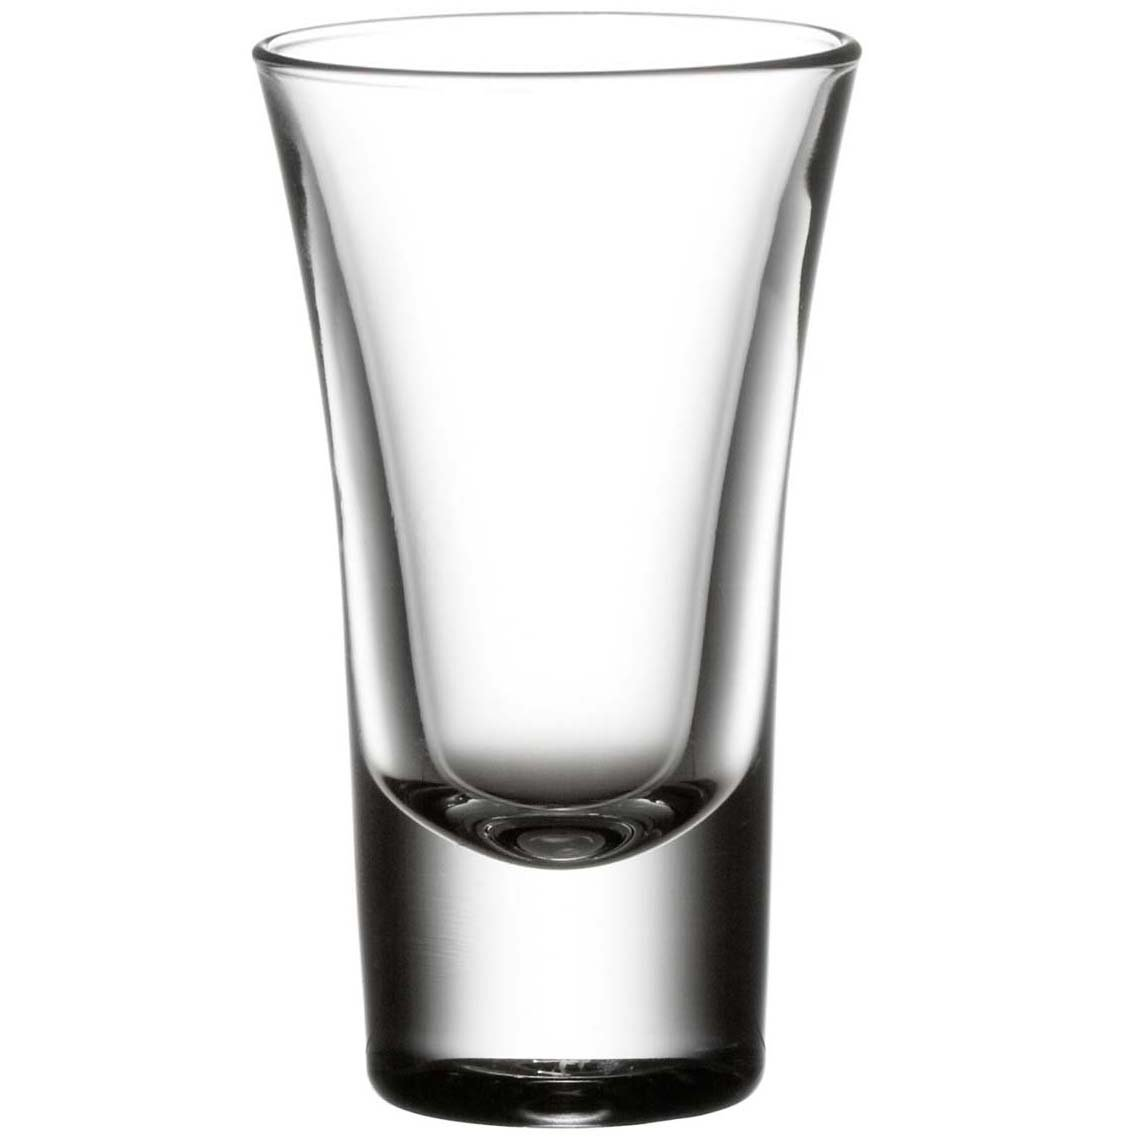 King International 100% Crystal Glass Heavy Base Curved Shot Glass Set of 6 | 2-Ounce Shot Glasses- Ideal fror Whiskey, Vodka, Tequilla| Bar tools | Bar Accessories by King International